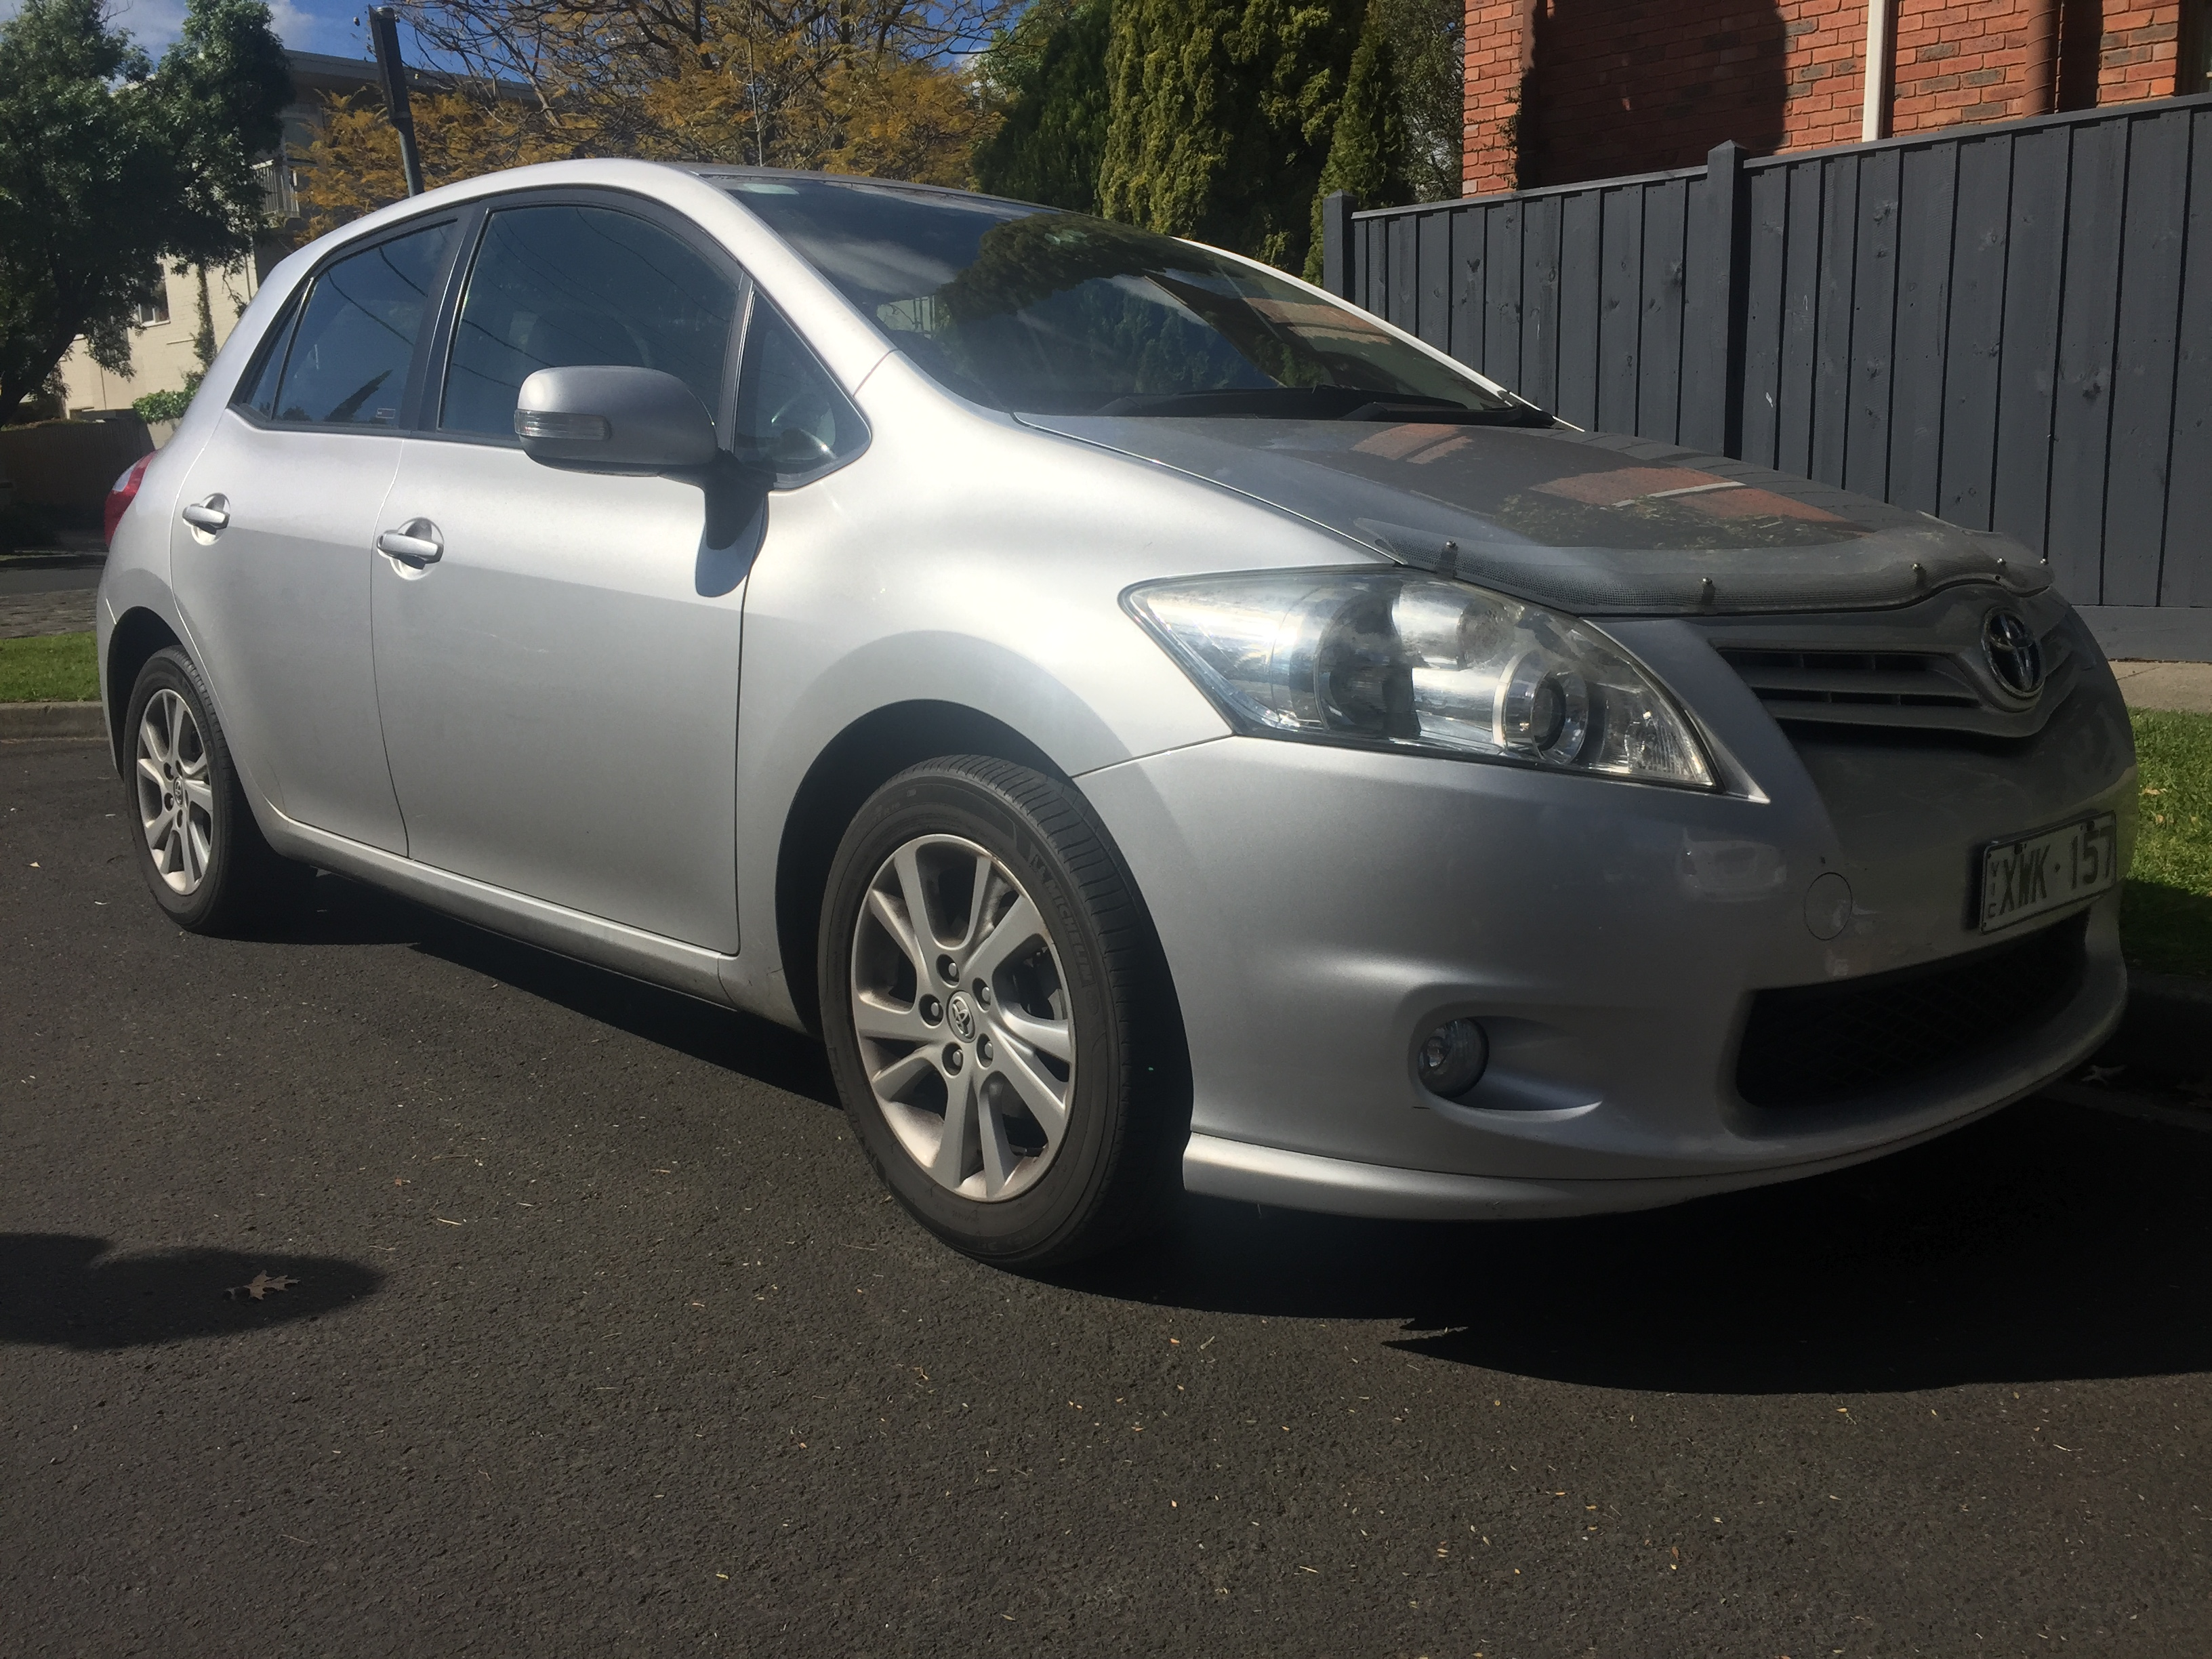 Picture of Lisa's 2010 Toyota Corolla